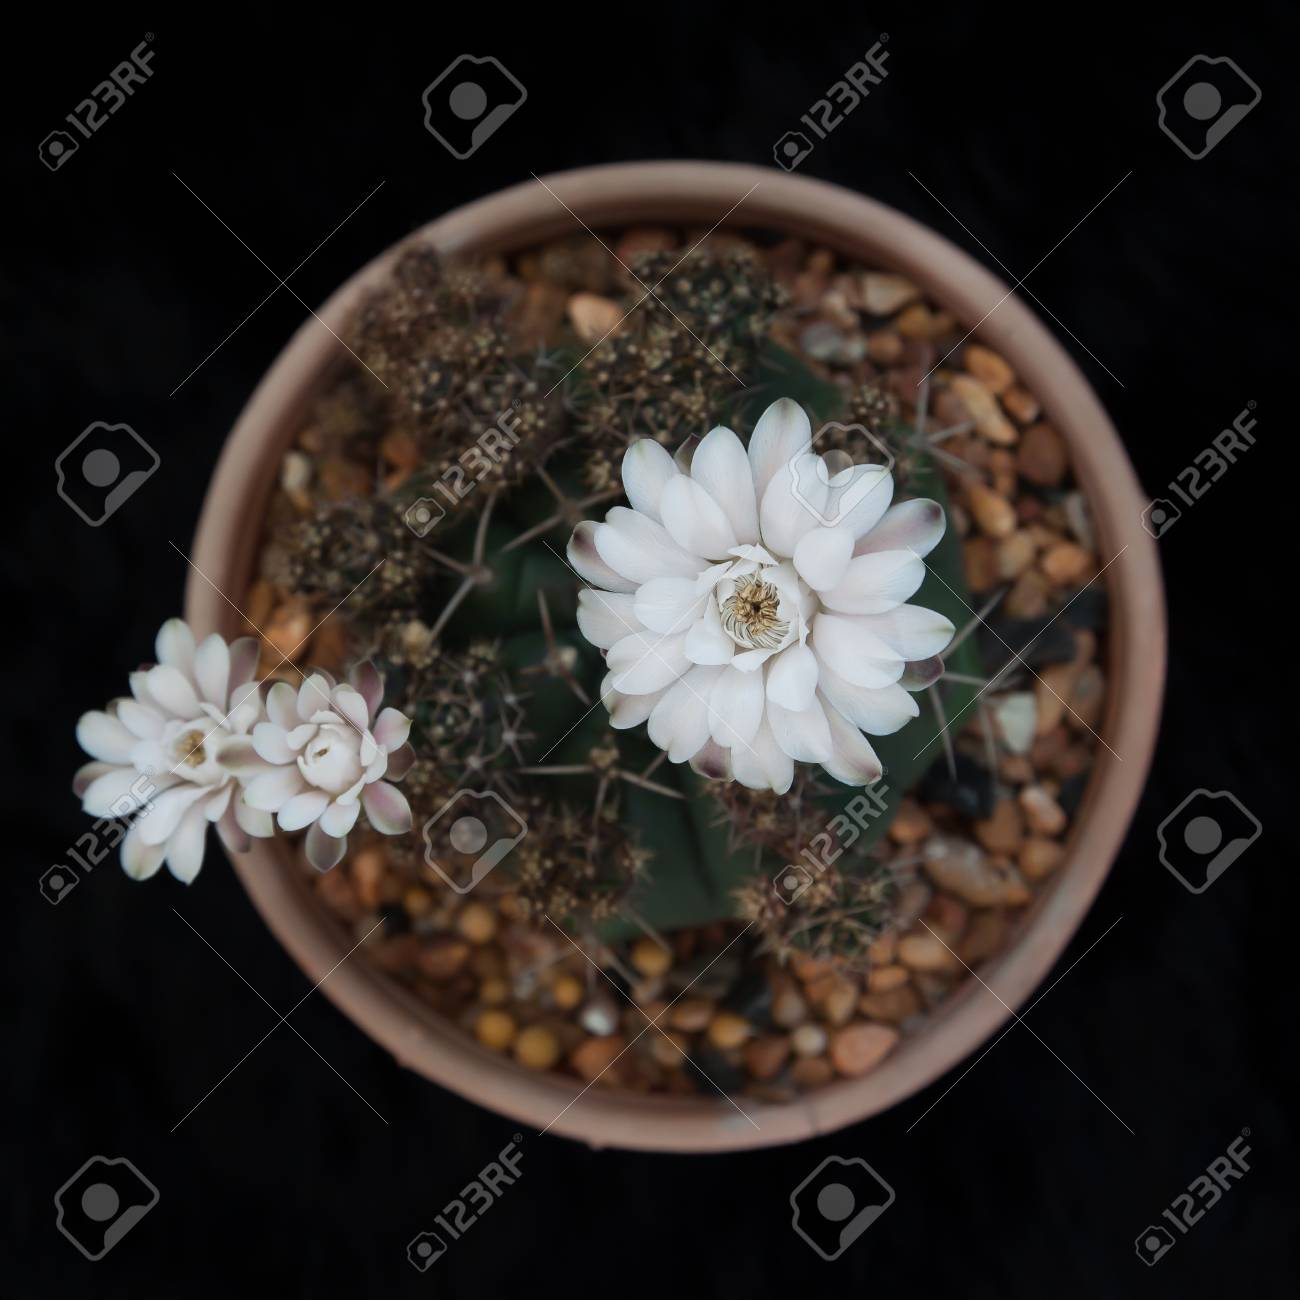 Cactus Plant With White Flowers On Black Background Flat Lay Stock